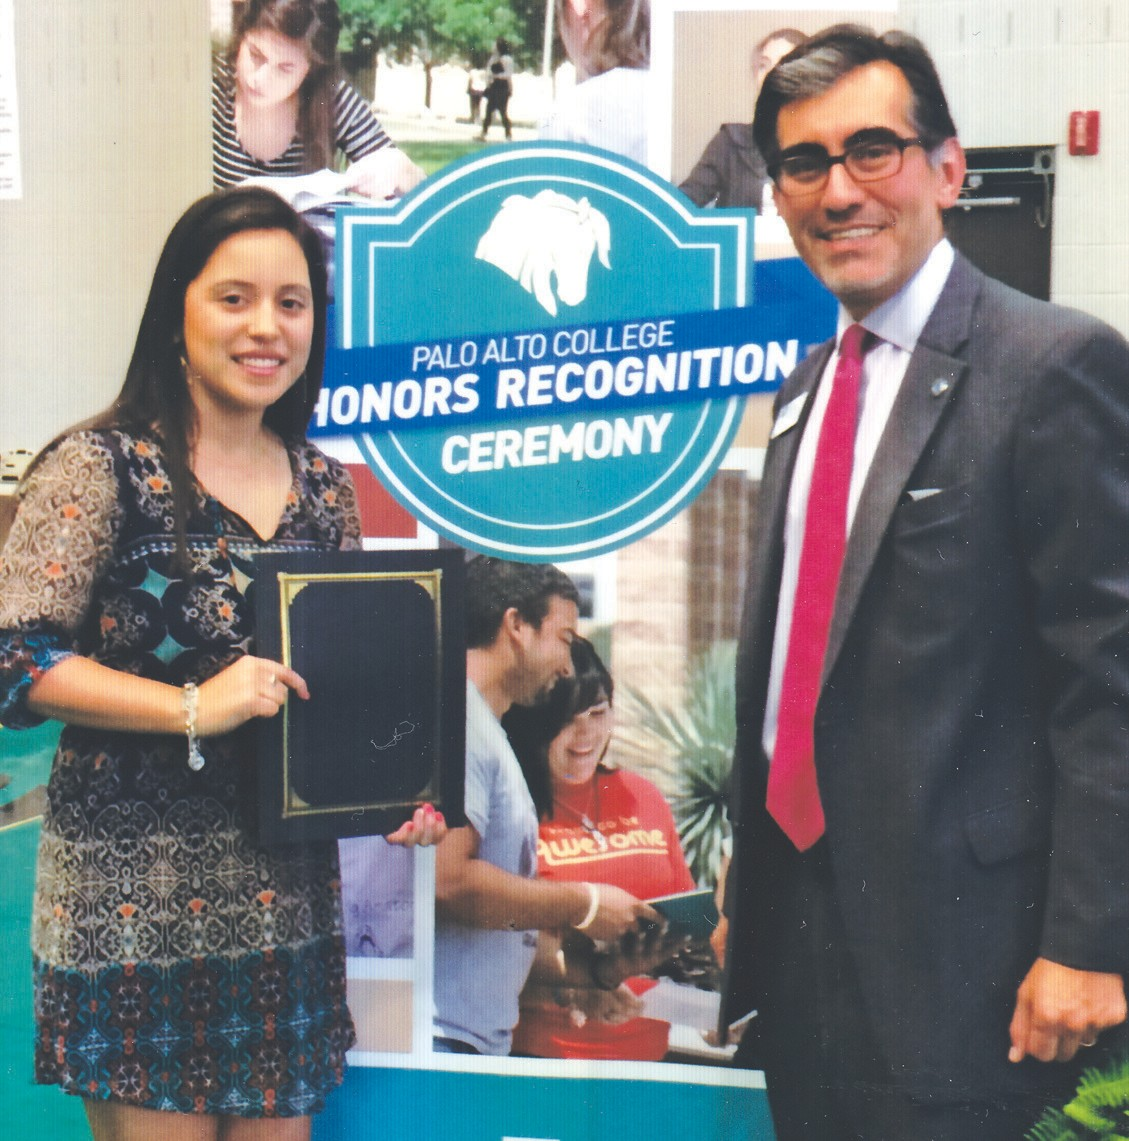 Leah Badillo was recognized at the Palo Alto College Honors Recognition Ceremony, by the President of Palo Alto College, Dr. Mike Flores. She received the President Honors Award for achieving a 4.0 grade point average during spring 2014. She is the daughter of Freddy and Olivia Badillo of Jourdanton and a 2013 graduate of Jourdanton High School.